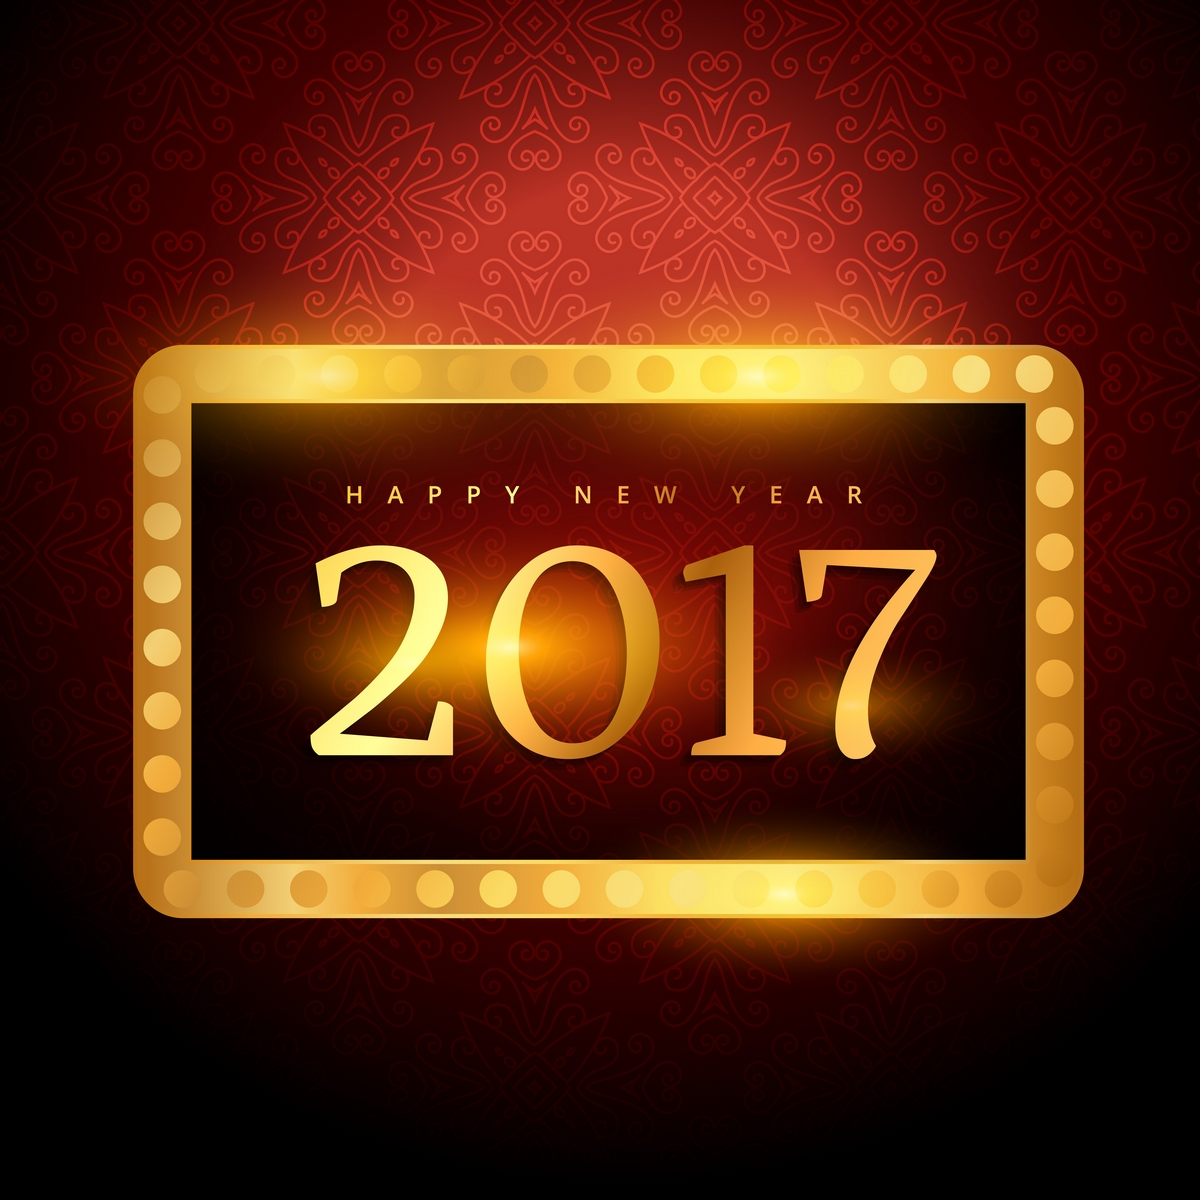 Happy New Year 2017 HD Wallpapers Download